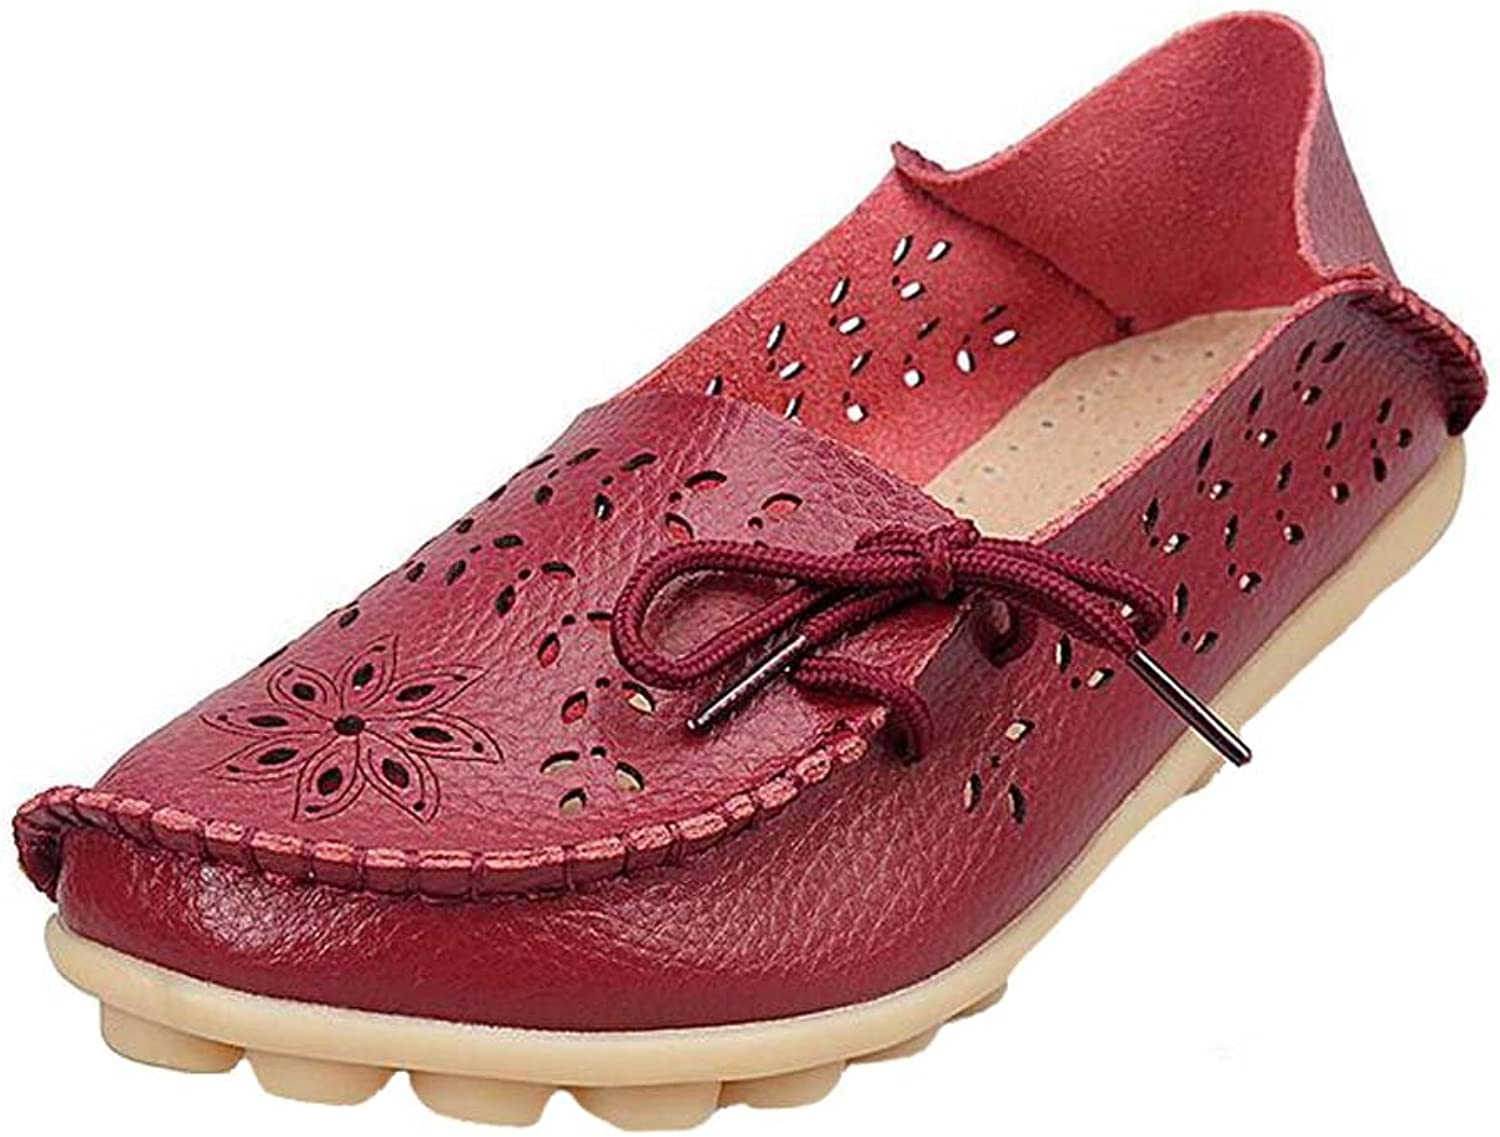 Angelliu Women Casual Hollow Autumn Spring Leather Doug Flats Mom's shoes Loafers Wine Red